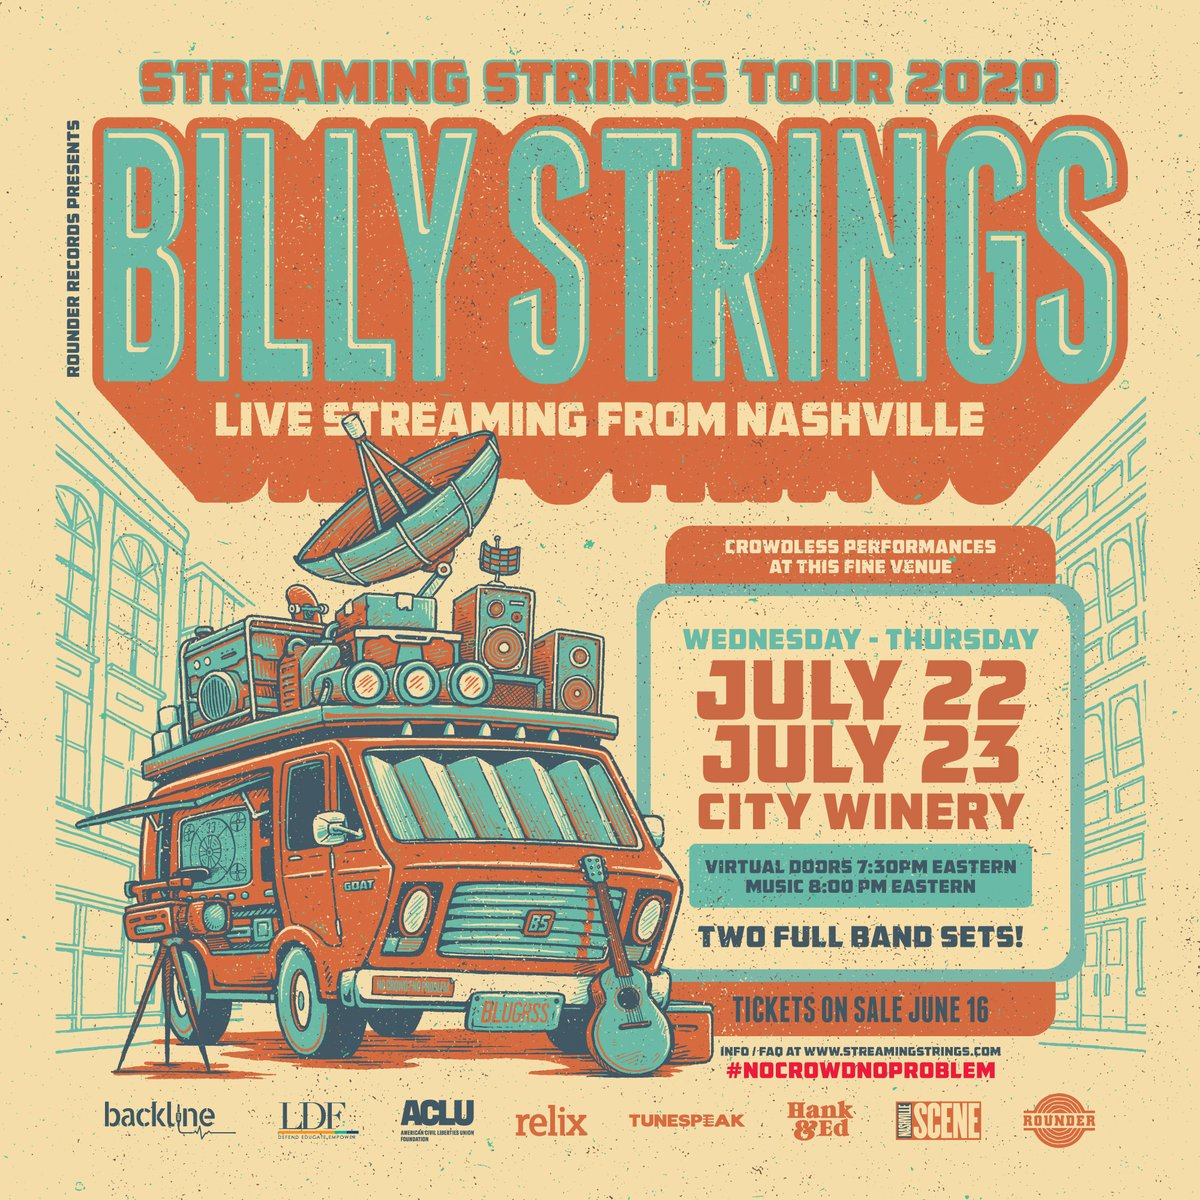 ANNOUNCE: @bstrings1 is coming to City Winery Nashville on 7/22 & 7/23 for his #StreamingStringsTour presented by @RounderRecords.  This CROWDLESS performance features two full band sets w/ full production and five cameras streaming from @nugsnet.  Info: https://t.co/4IAYYfnb4C https://t.co/4pNpBJYfHN